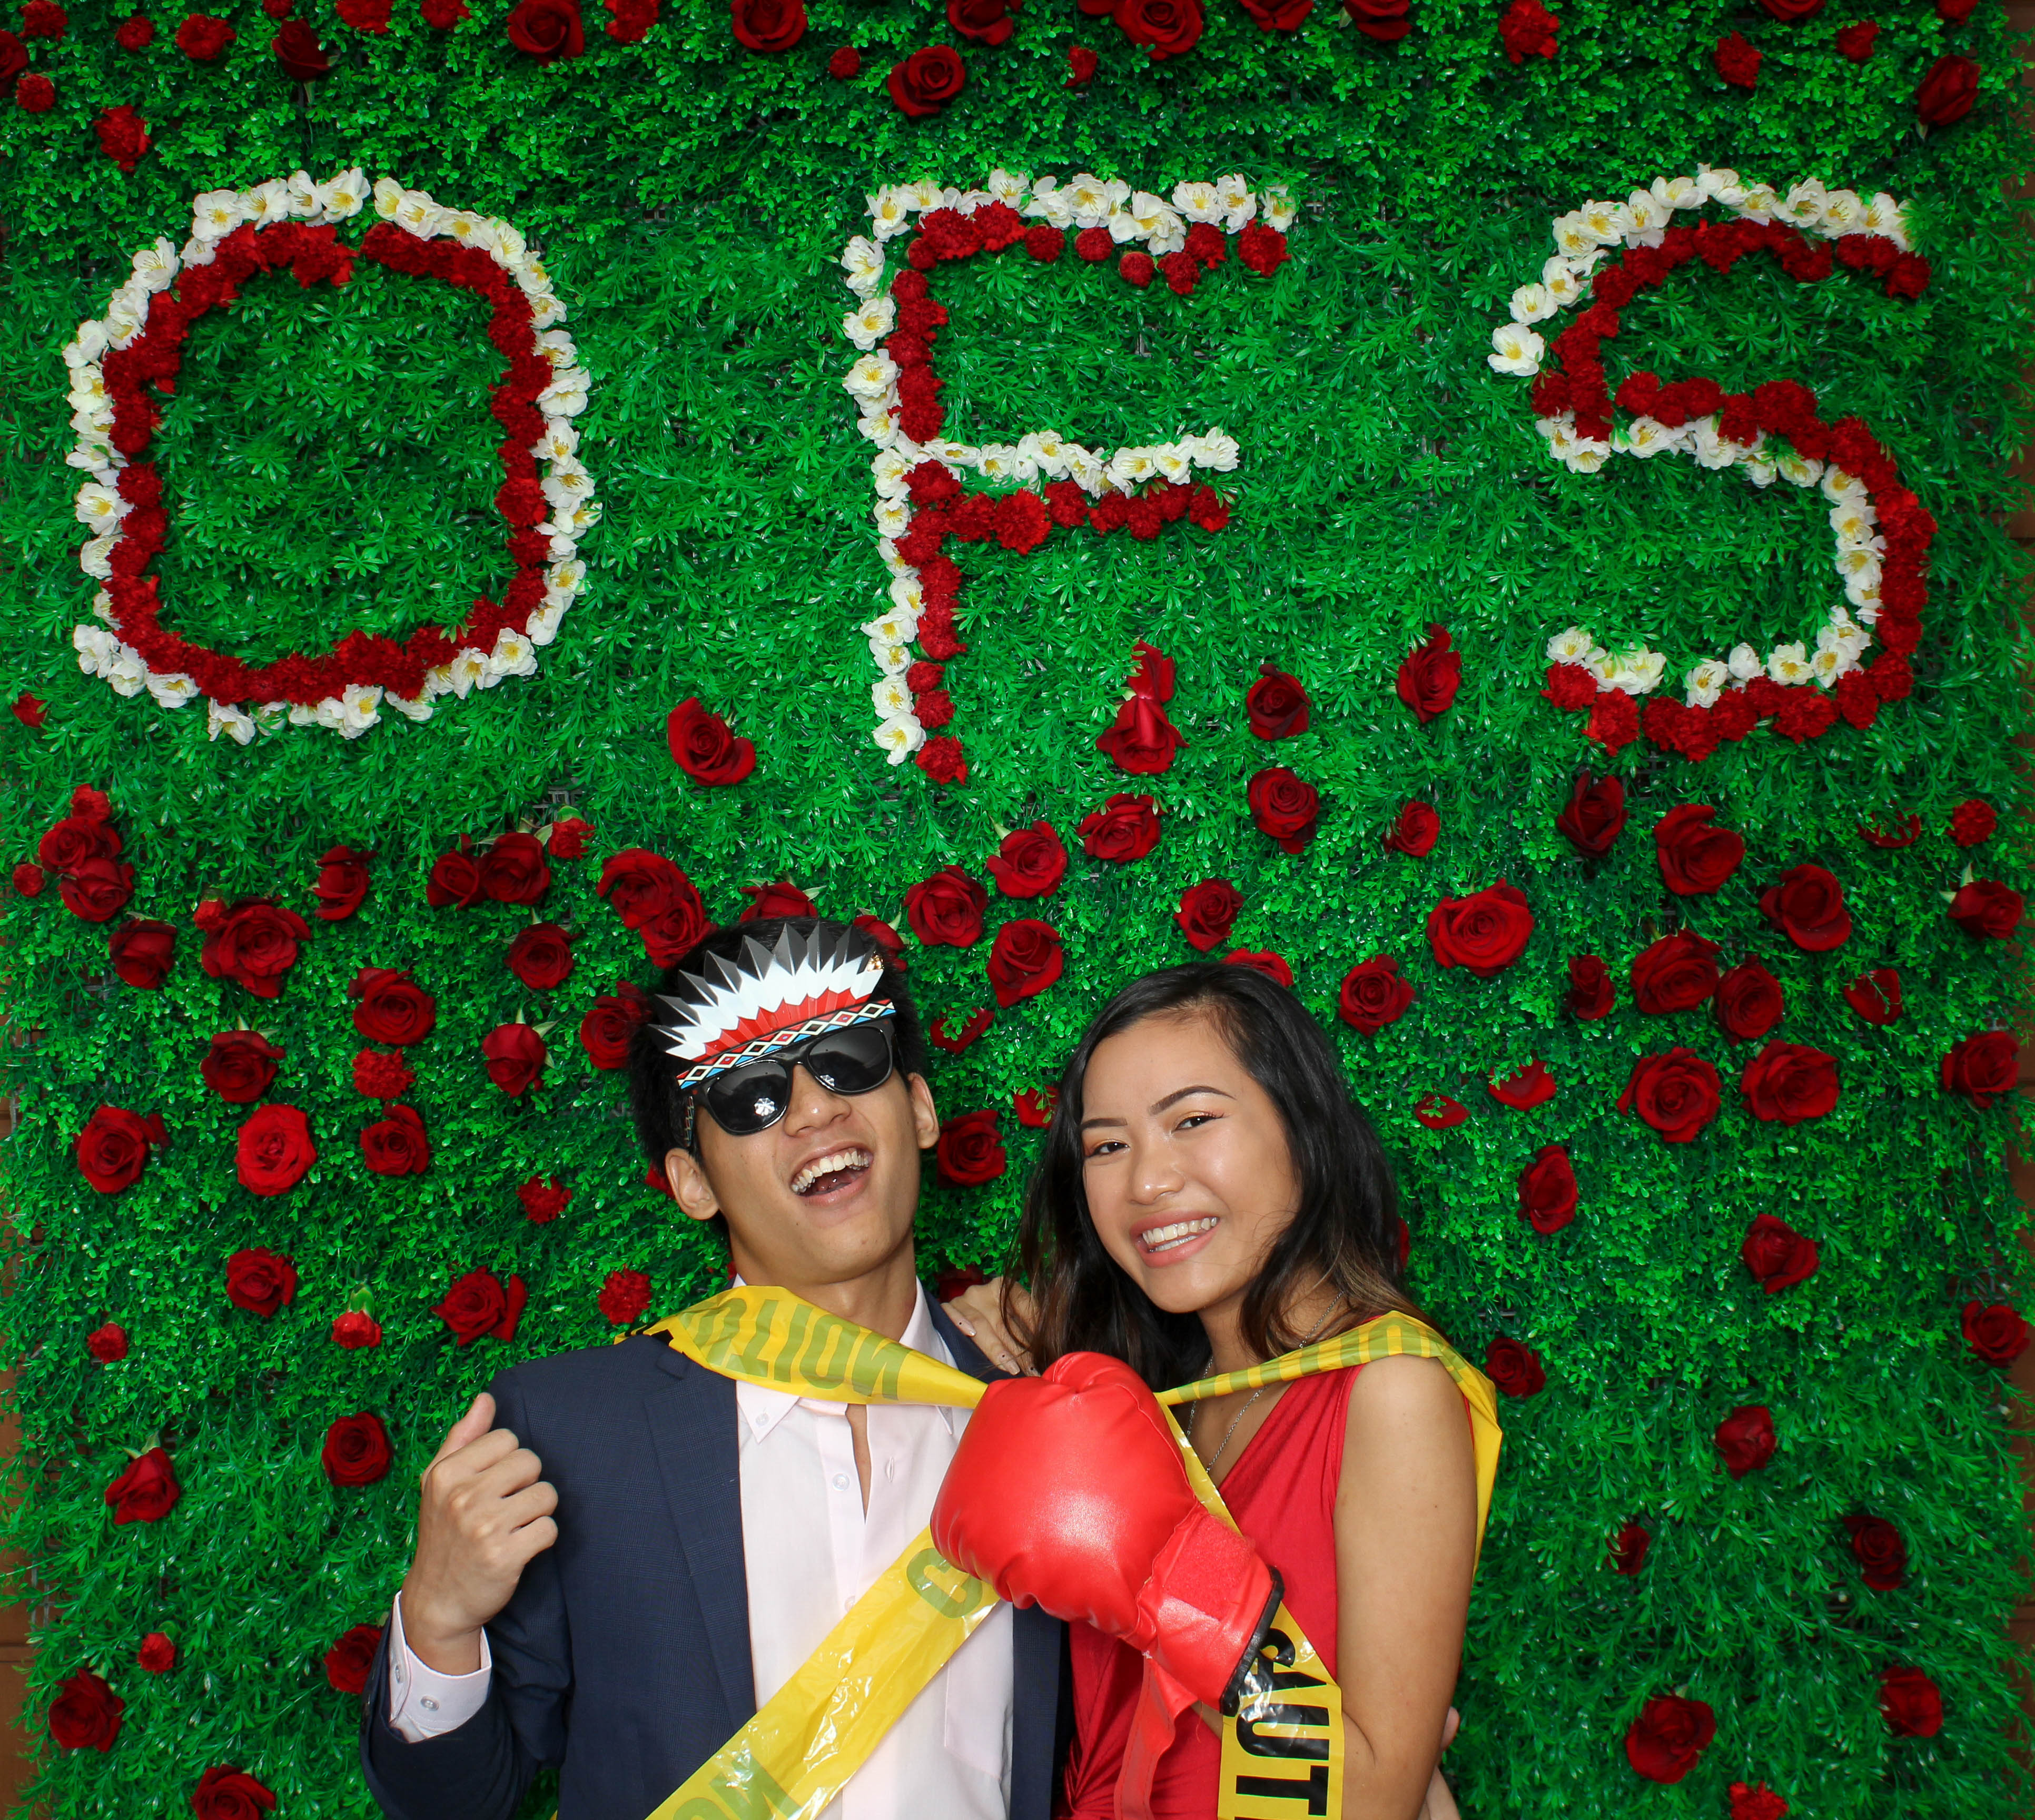 Photobooth sg ofs 2505 (39 of 215)